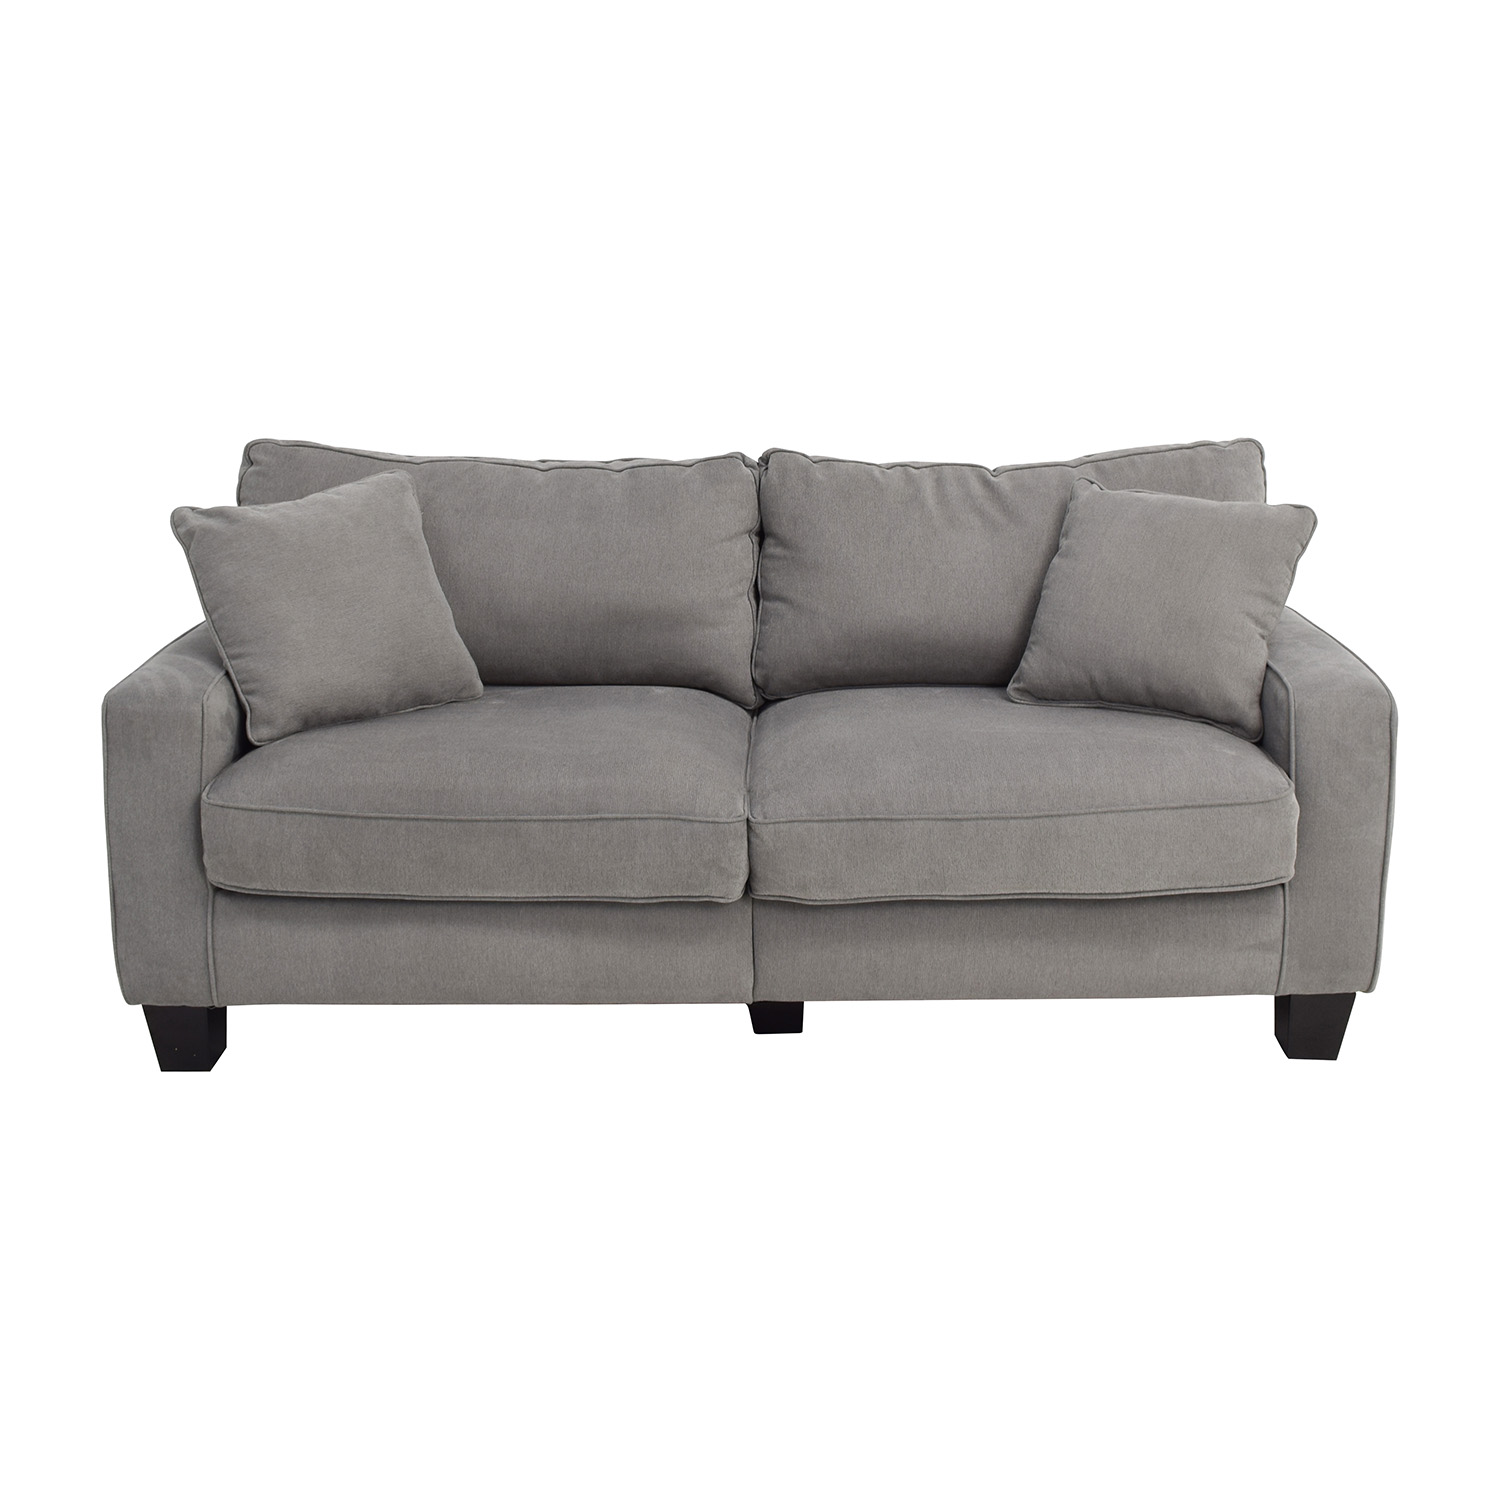 shop Serta Grey Couch with Toss Pillows Serta Sofas